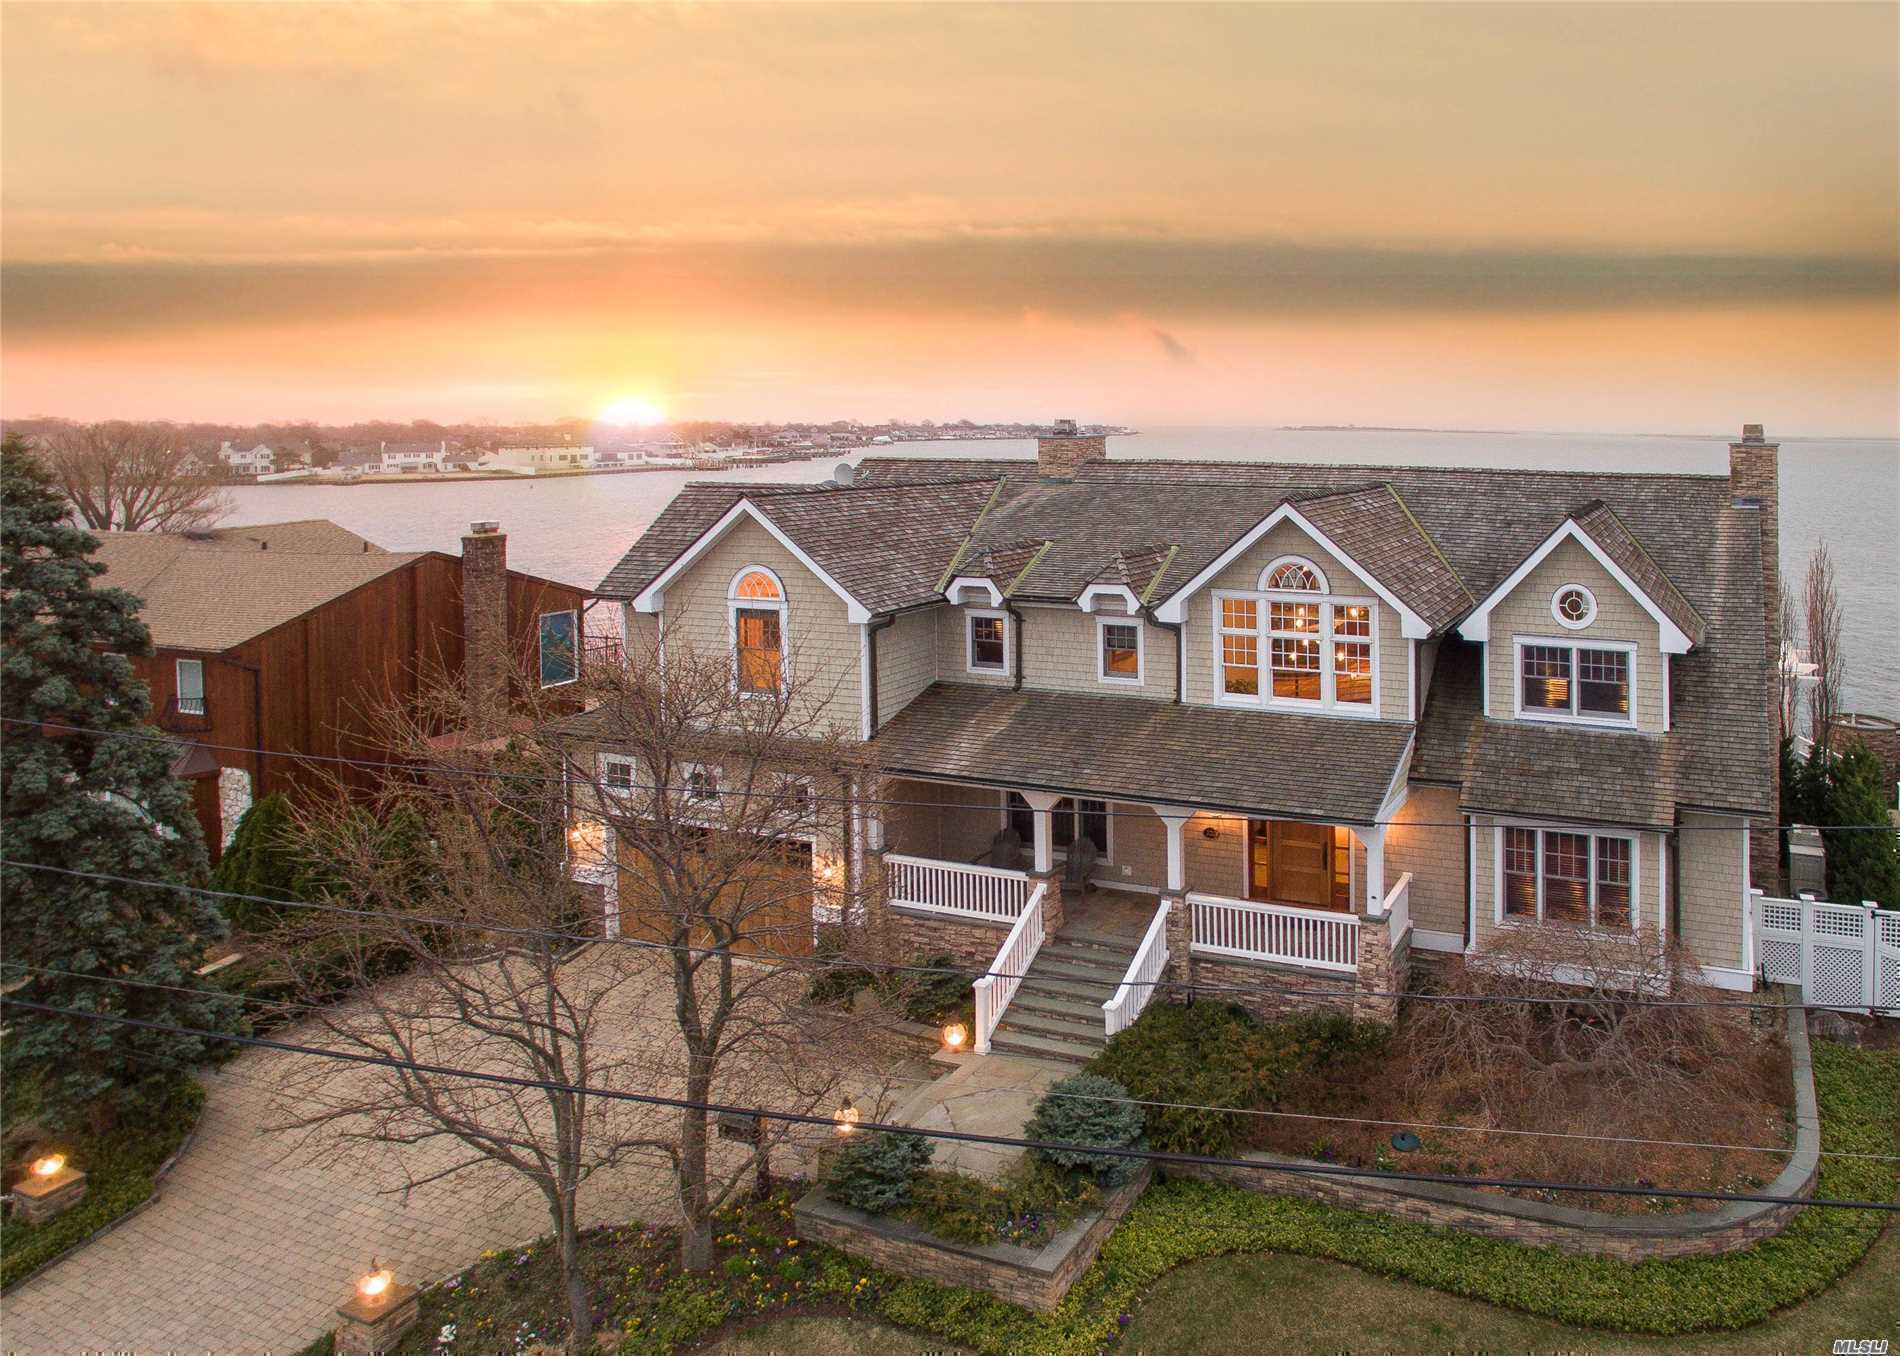 Summer Wind Is Impeccably Designed And Detailed For Effortless, Sophisticated Living By World-Famous Kean Development Company, This 5-Bedroom Waterfront Home Boasts Sweeping Views Of Great South Bay With Private Docking, Offering The Discerning Homeowner Move-In Ready Sanctuary Living. This Meticulously-Maintained Home Offers Effortless Entertaining Spaces.